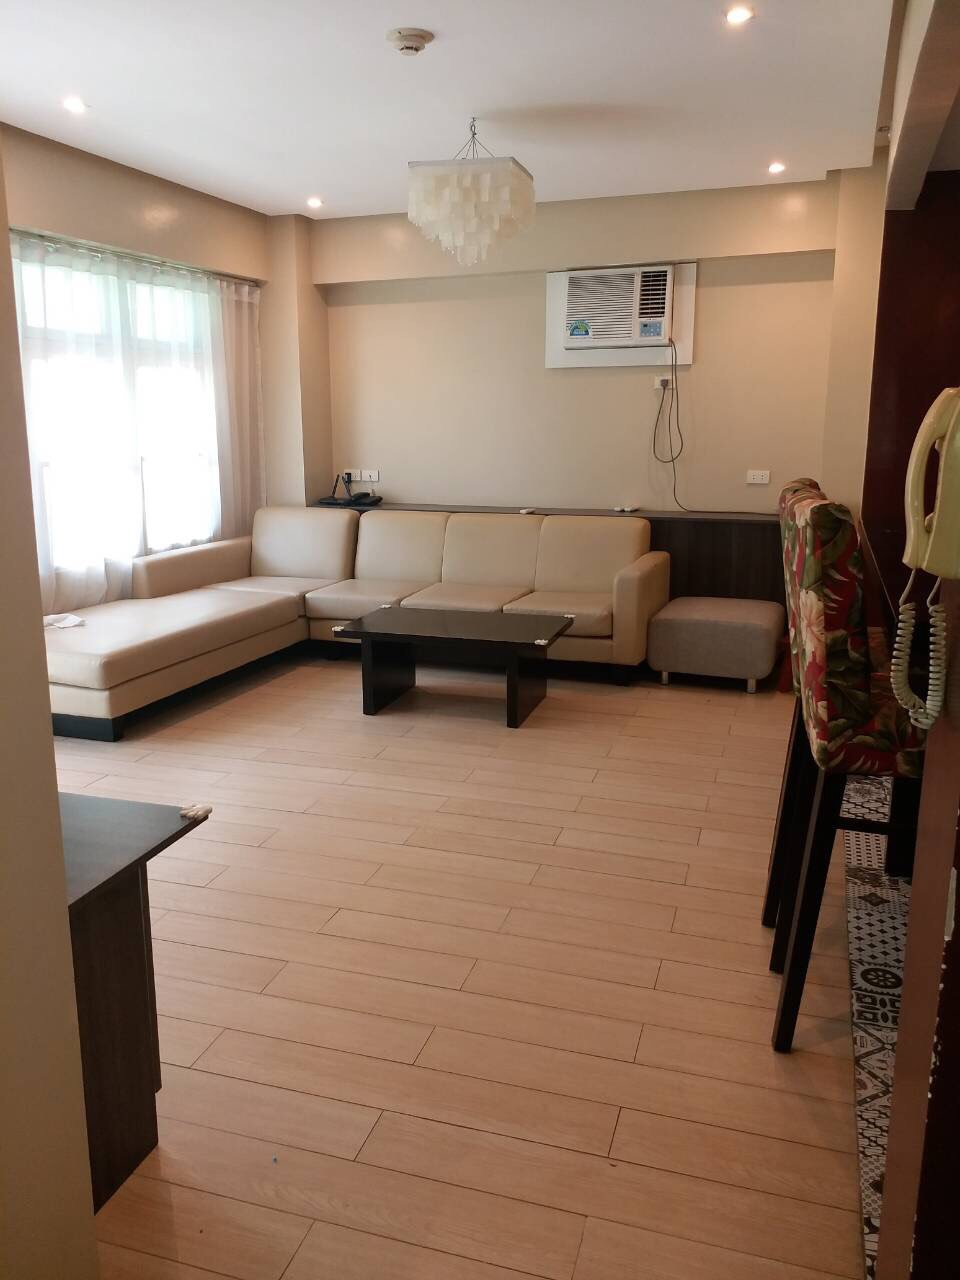 For Rent, Almond, Two Serendra, BGC, Taguig City Living Area 2